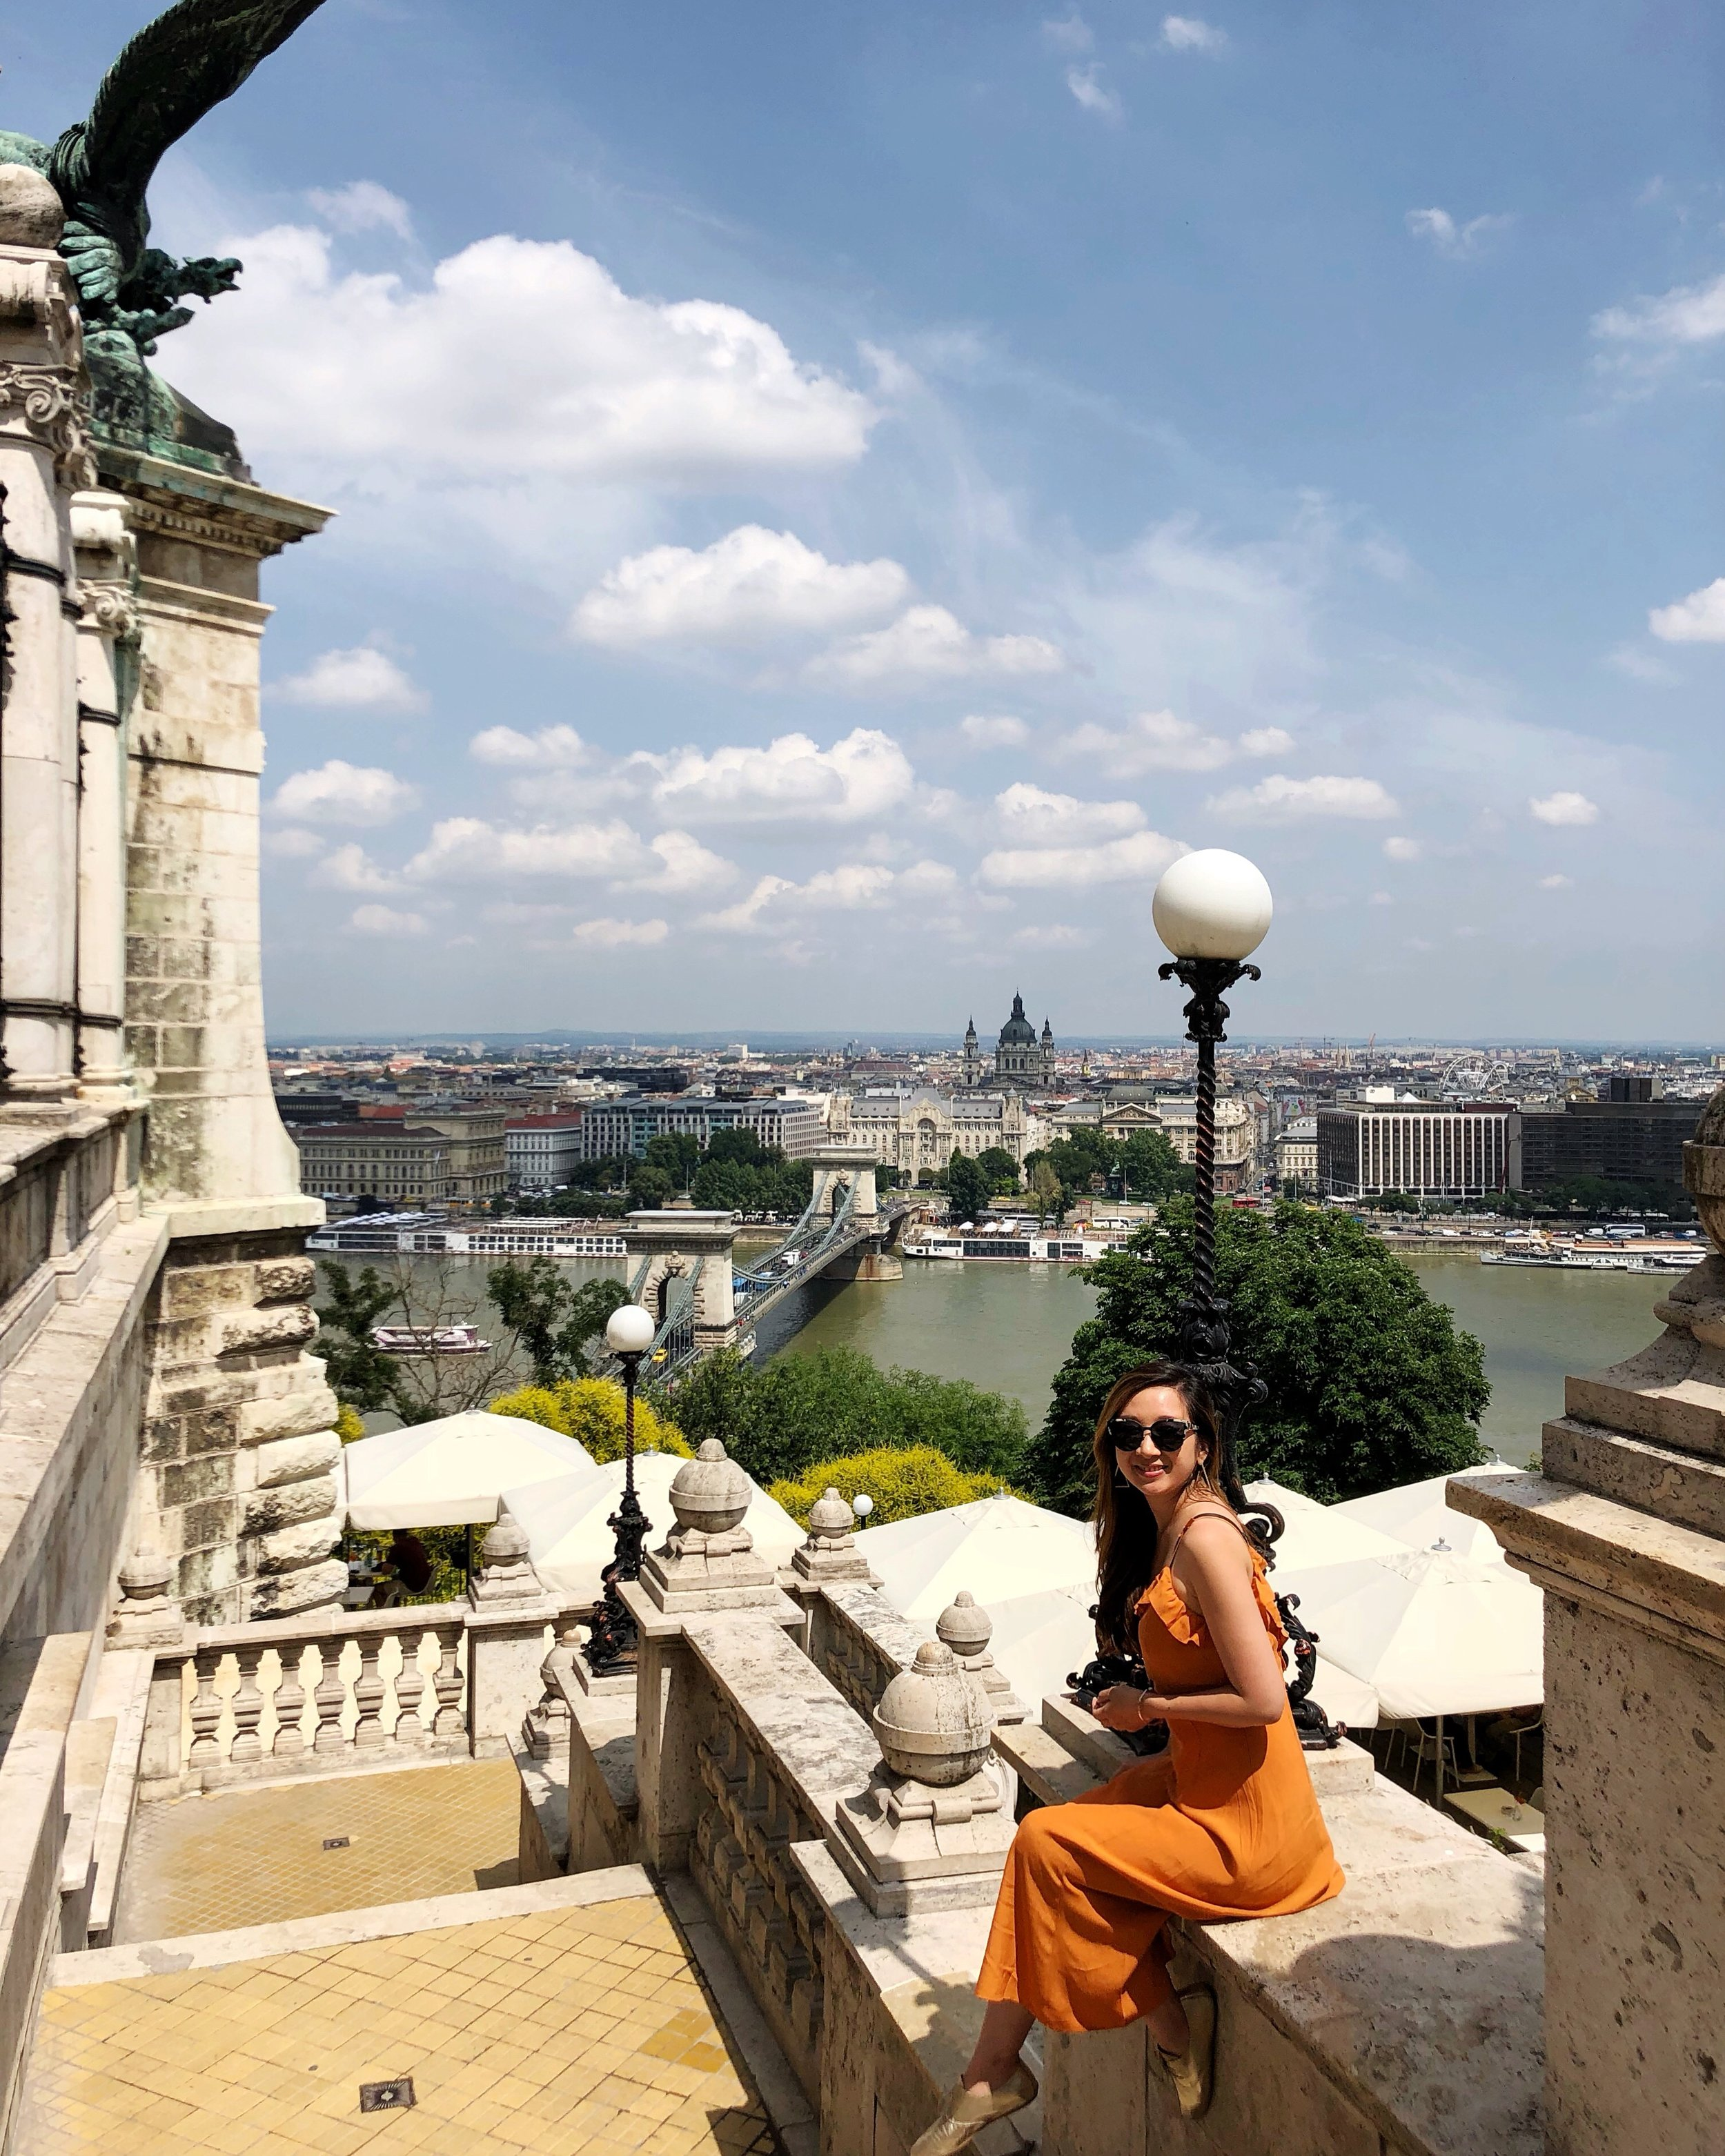 Wearing the orange dress in Budapest earlier this summer.